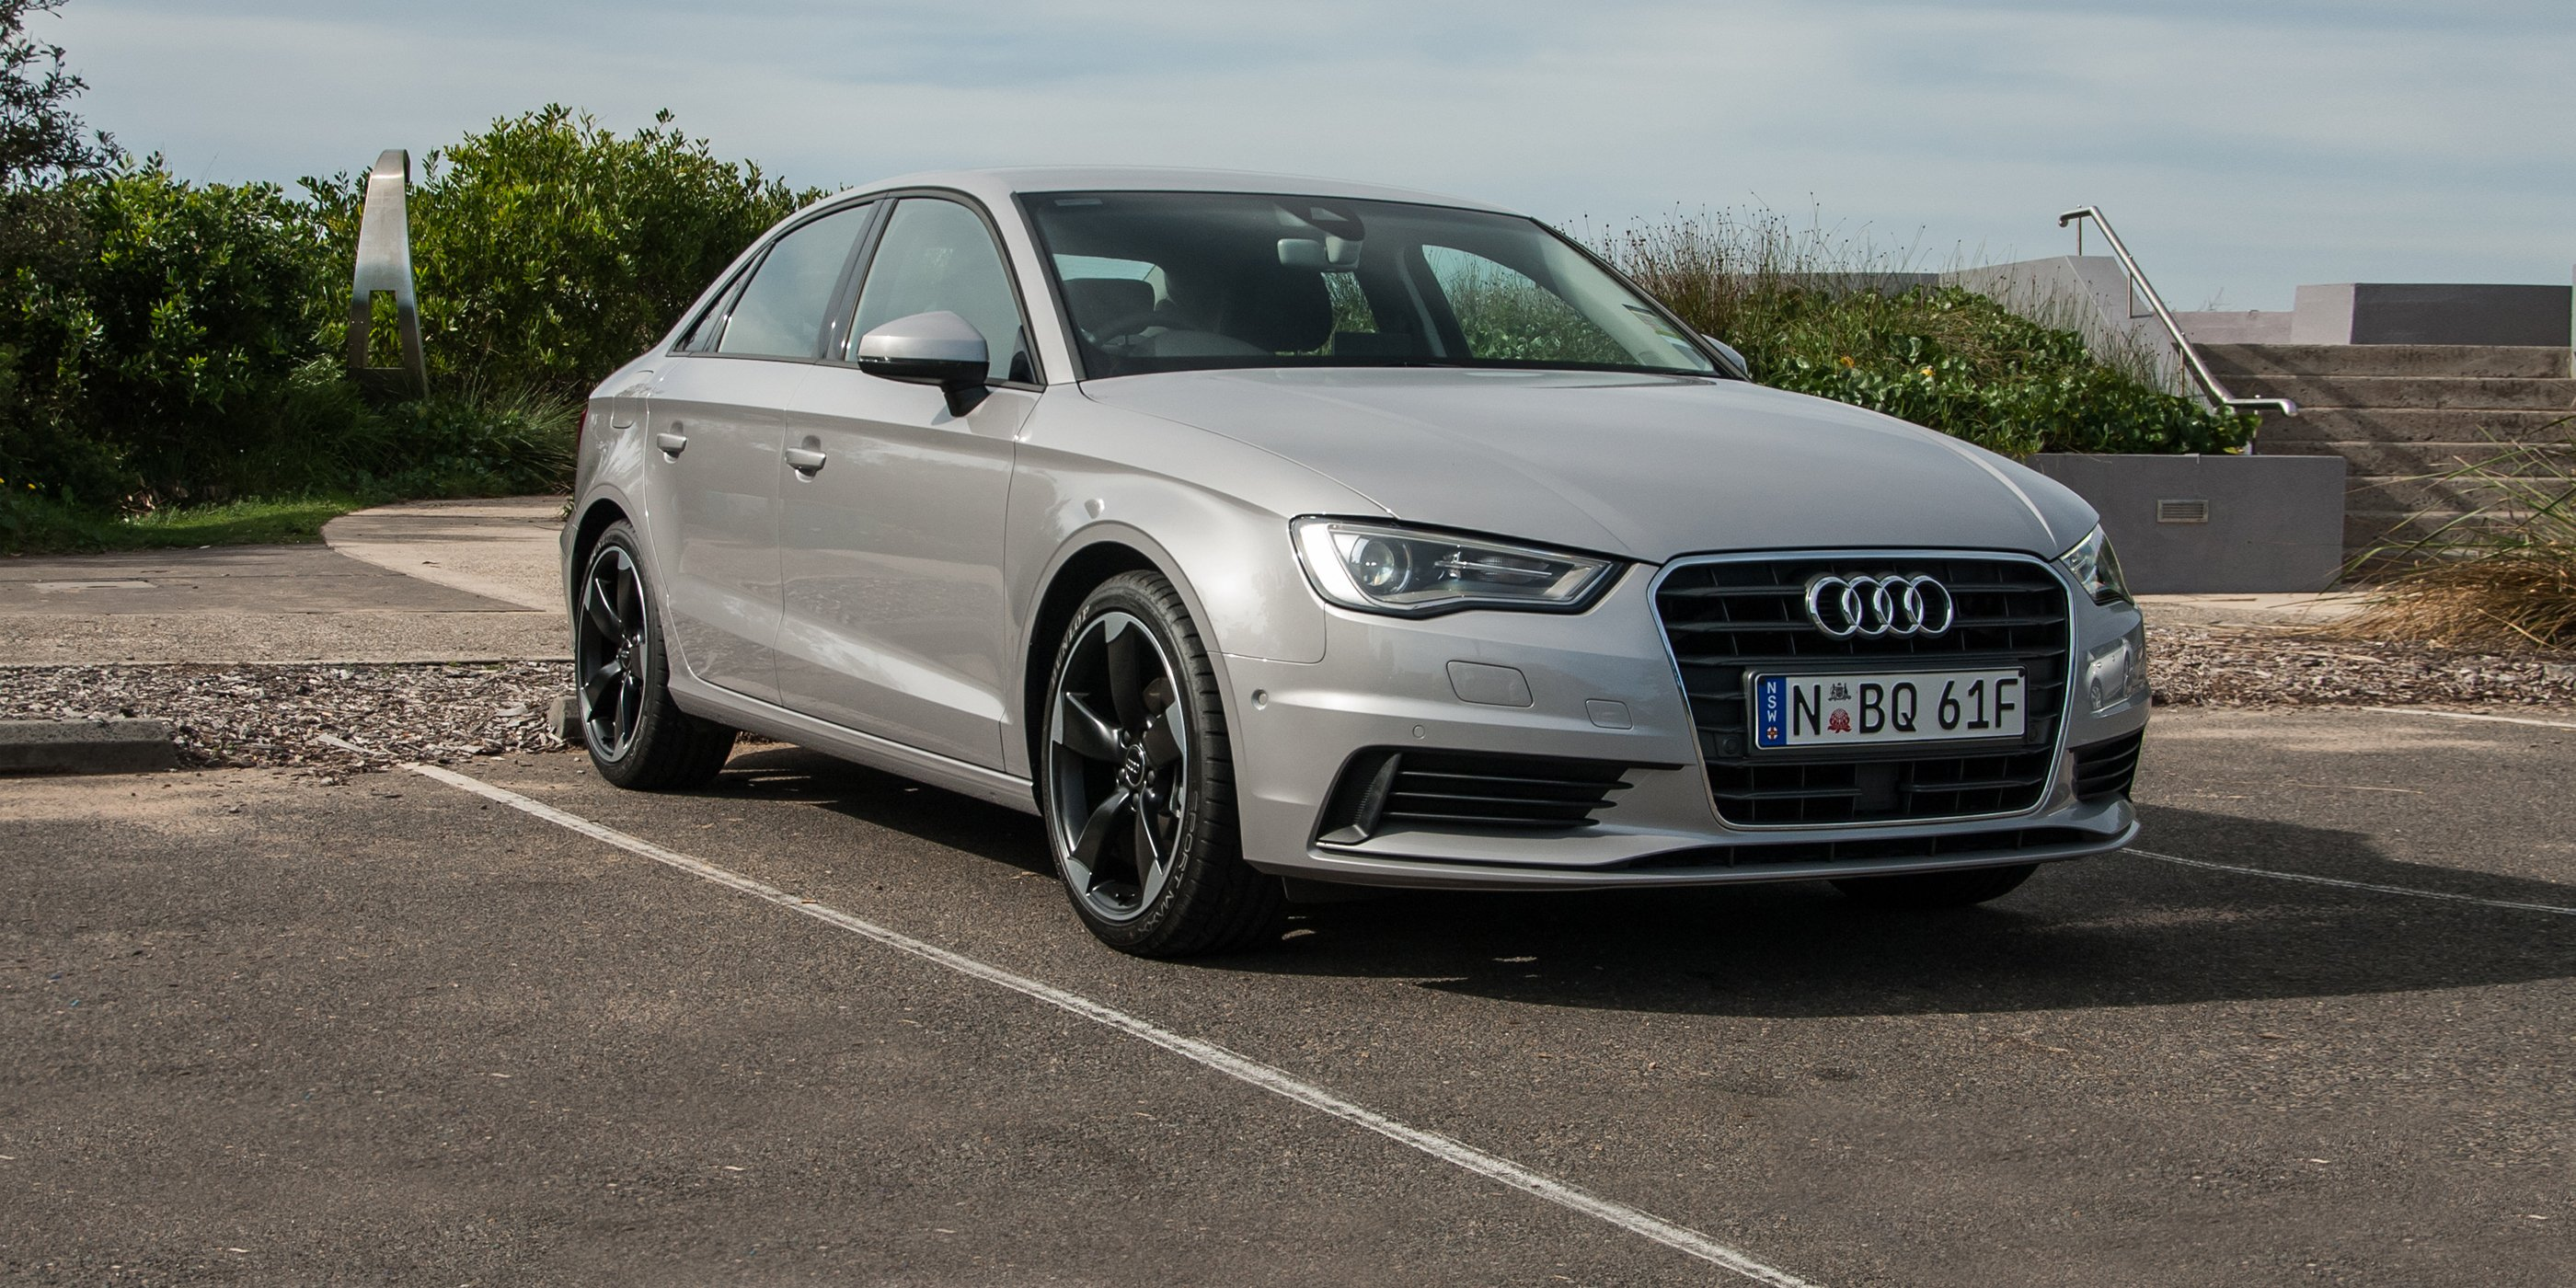 2016 Audi A3 Sedan 1 4 Cod Attraction Review Runout Round